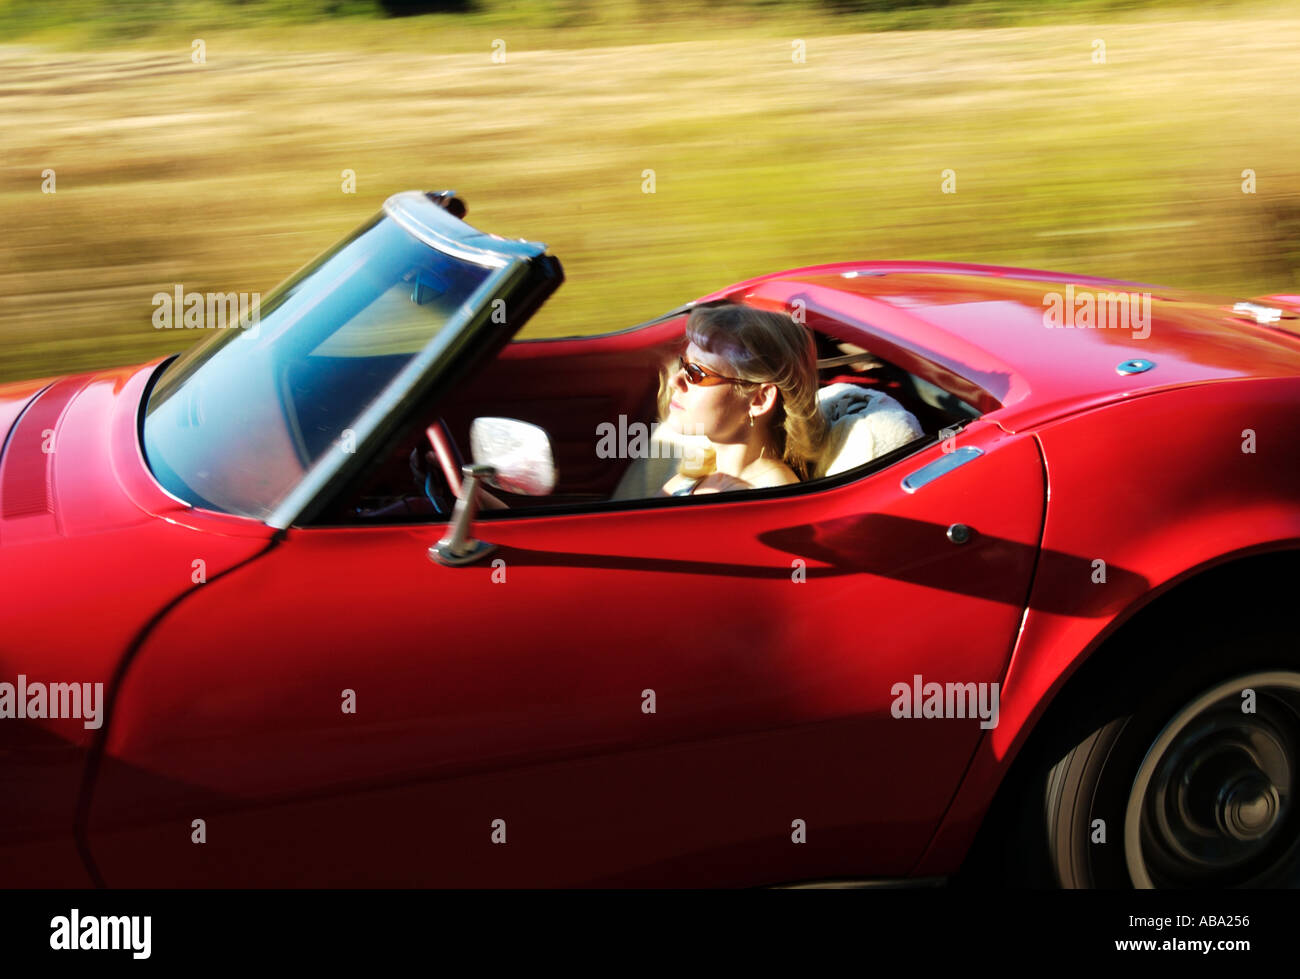 Blond Girl Driving Red Convertible Corvette Stock Photo